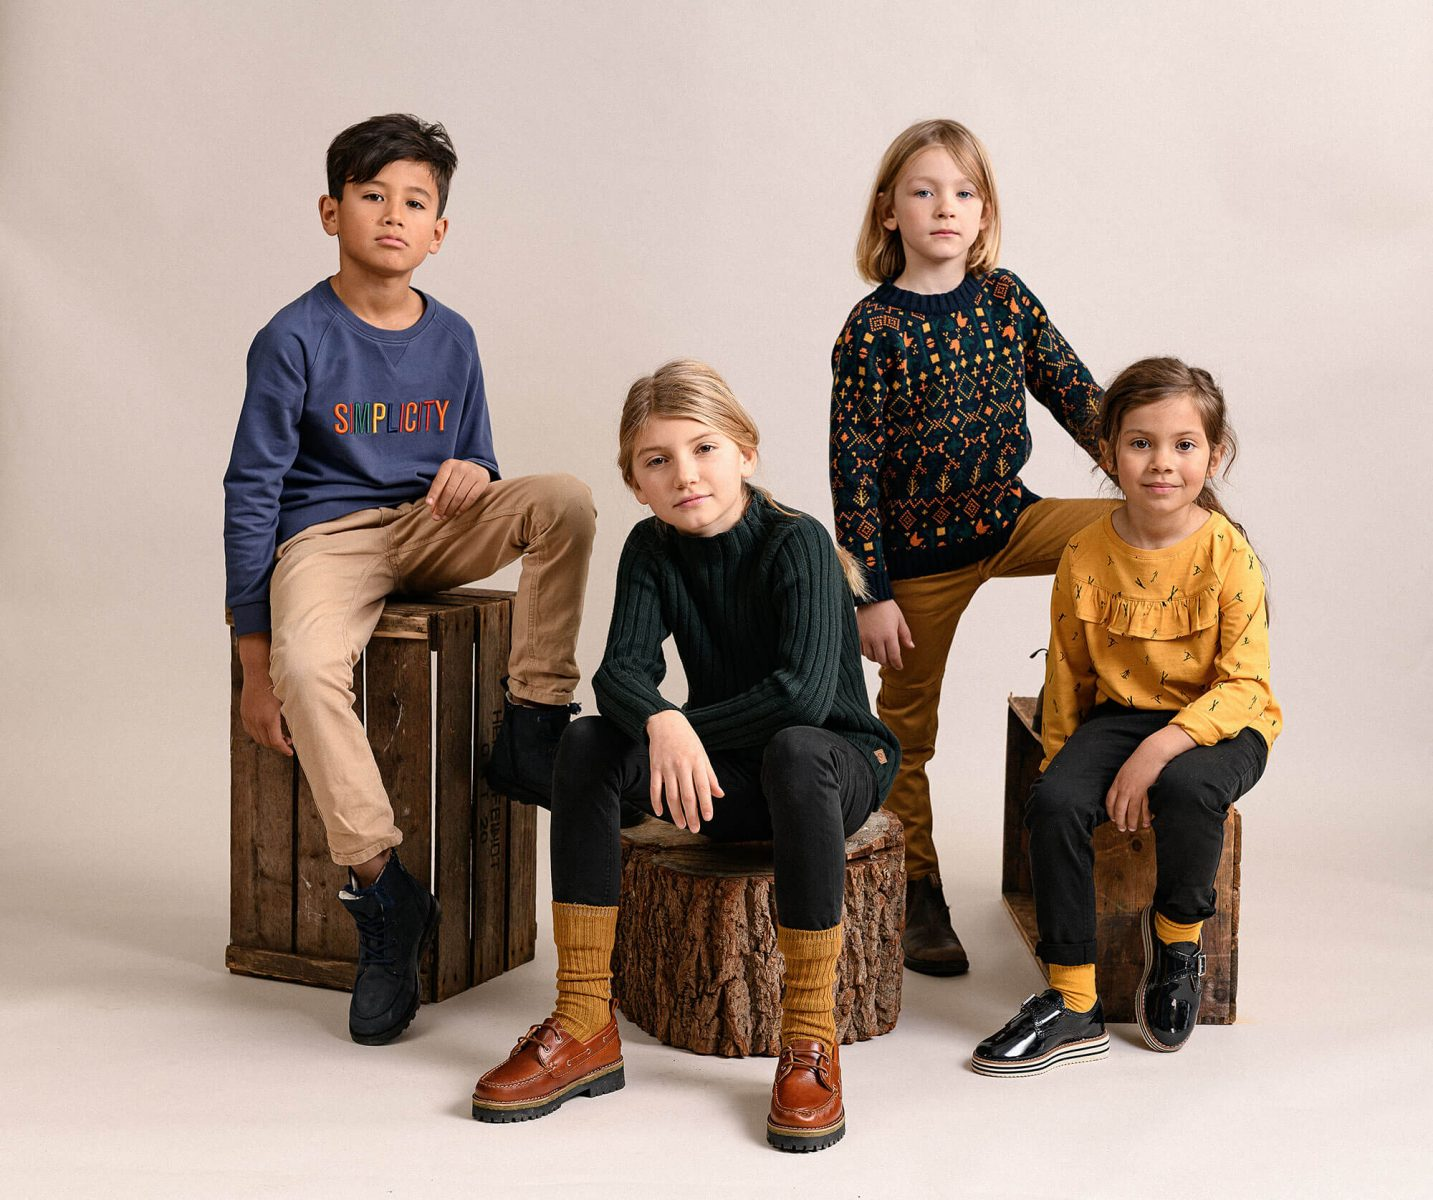 Bunch of kids posing in a studio environment